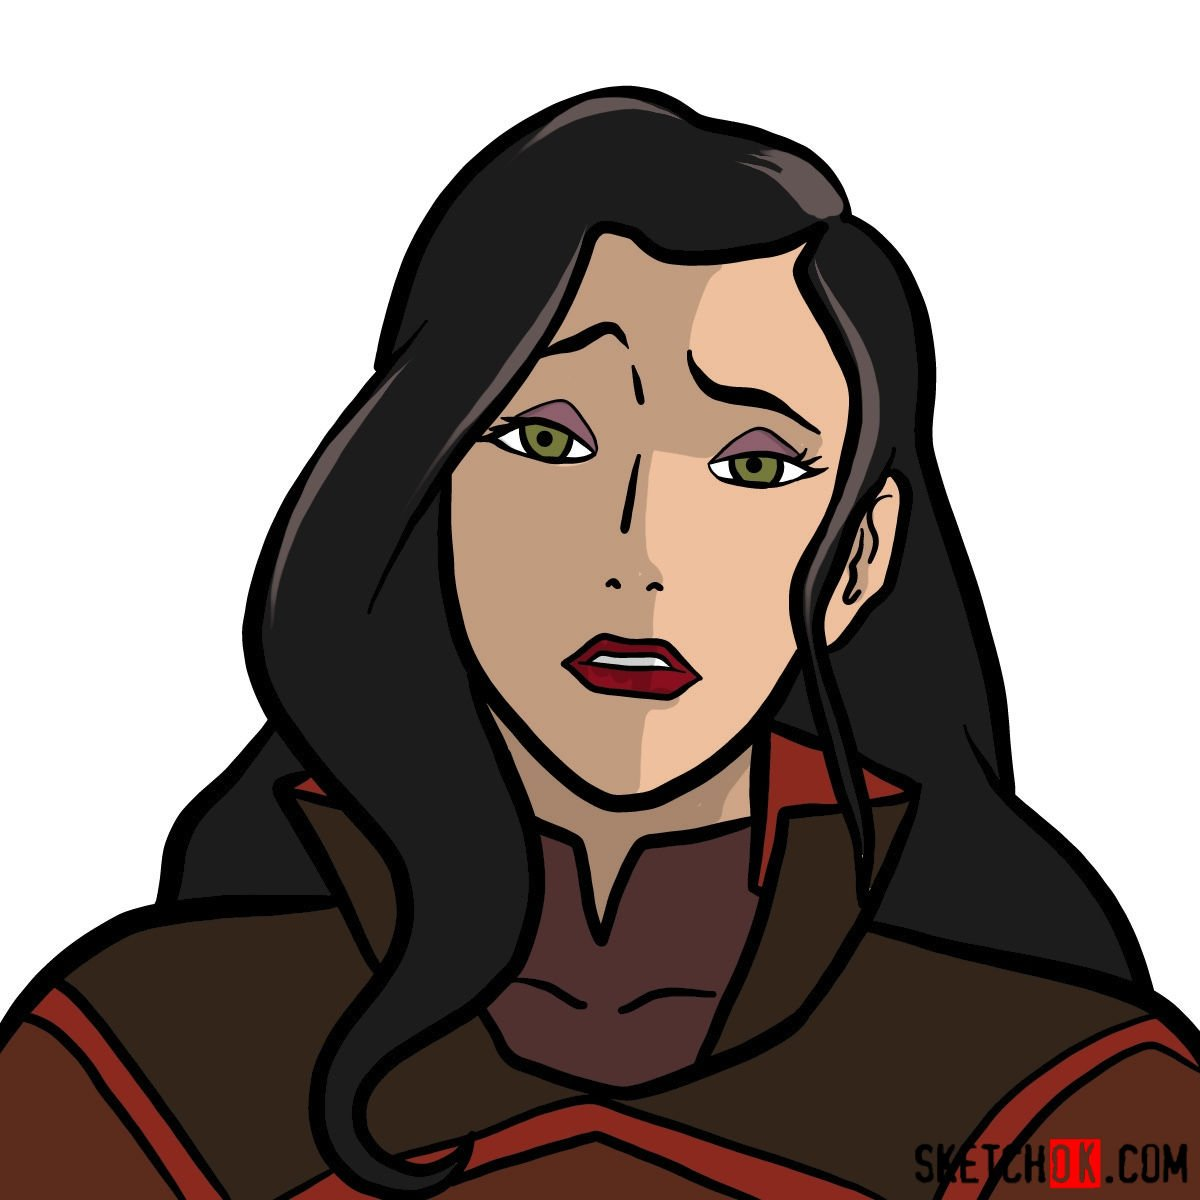 How to draw Asami Sato's portrait